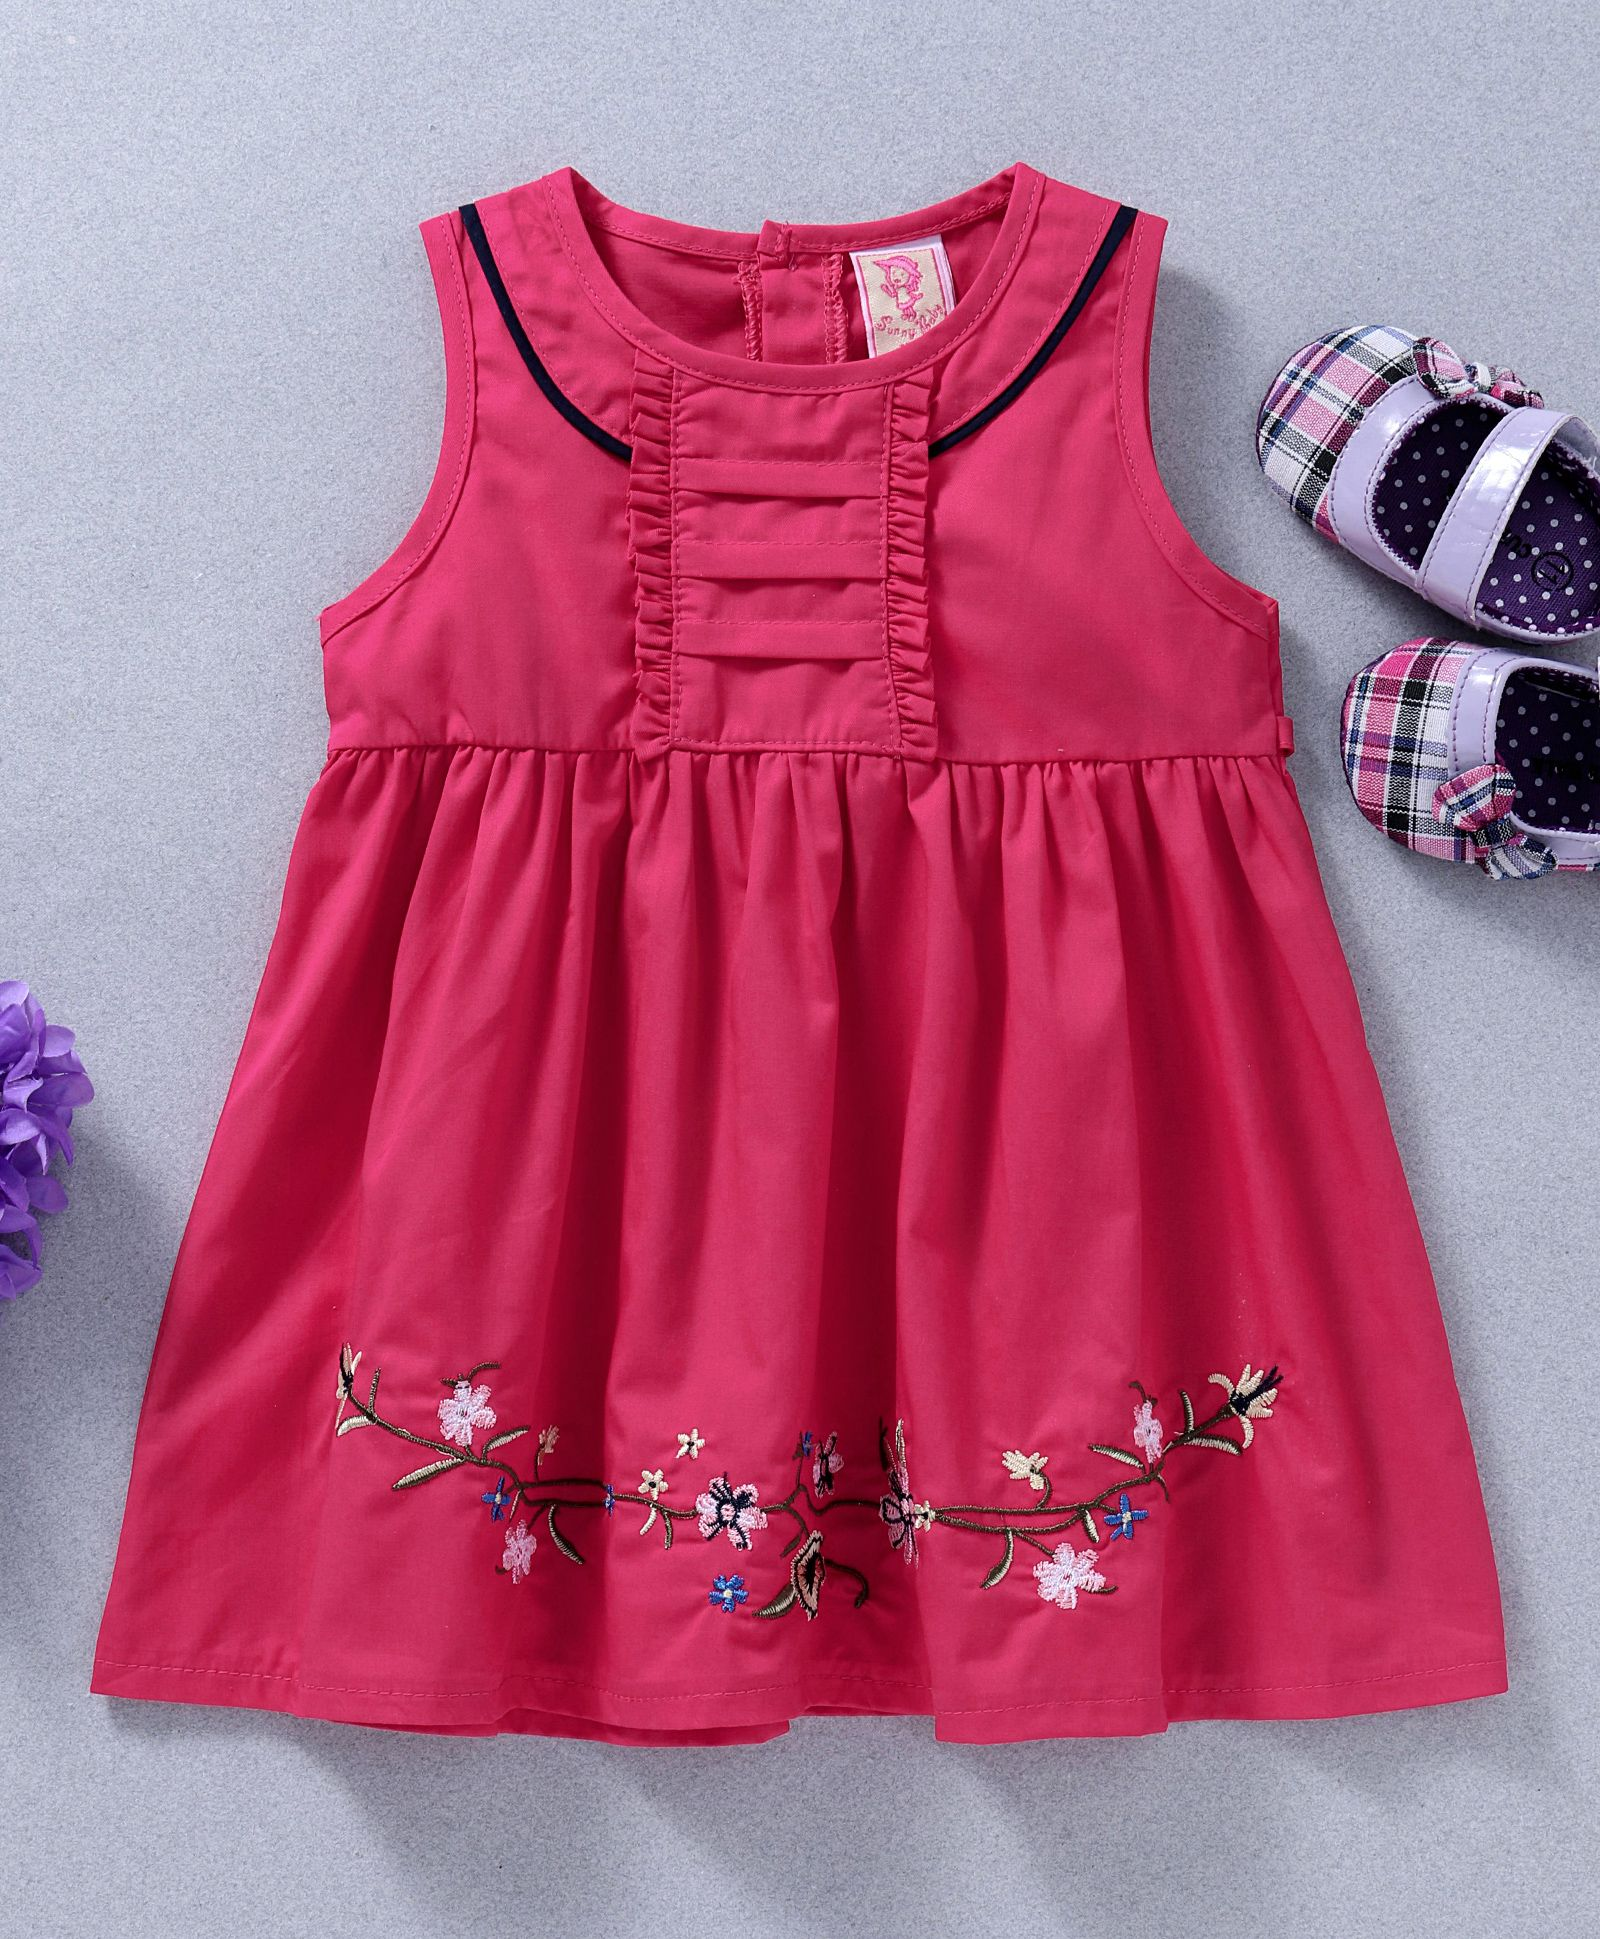 04912b2995b6 Buy Sunny Baby Floral Embroidered Sleeveless Dress Pink for Girls (0 ...